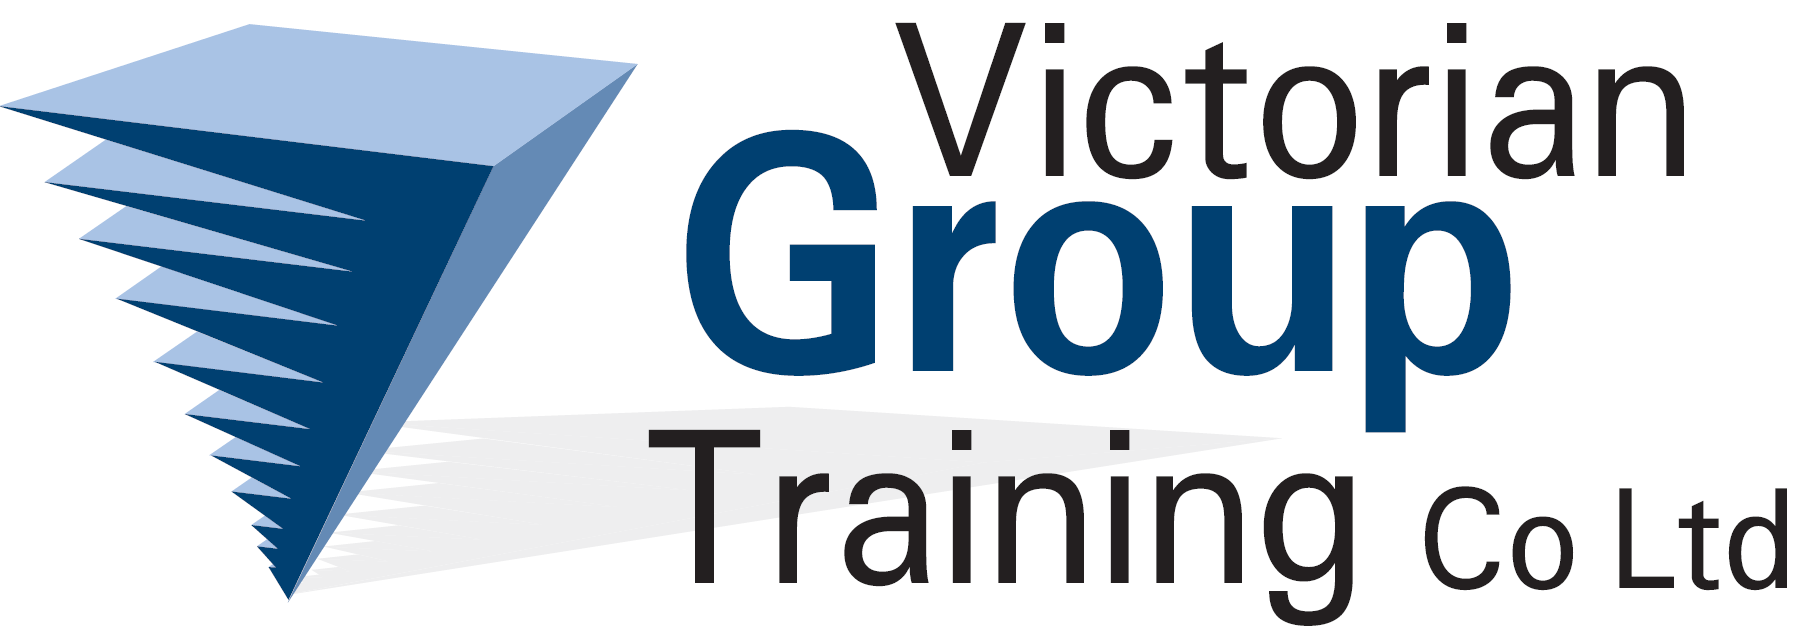 Victorian Group Training